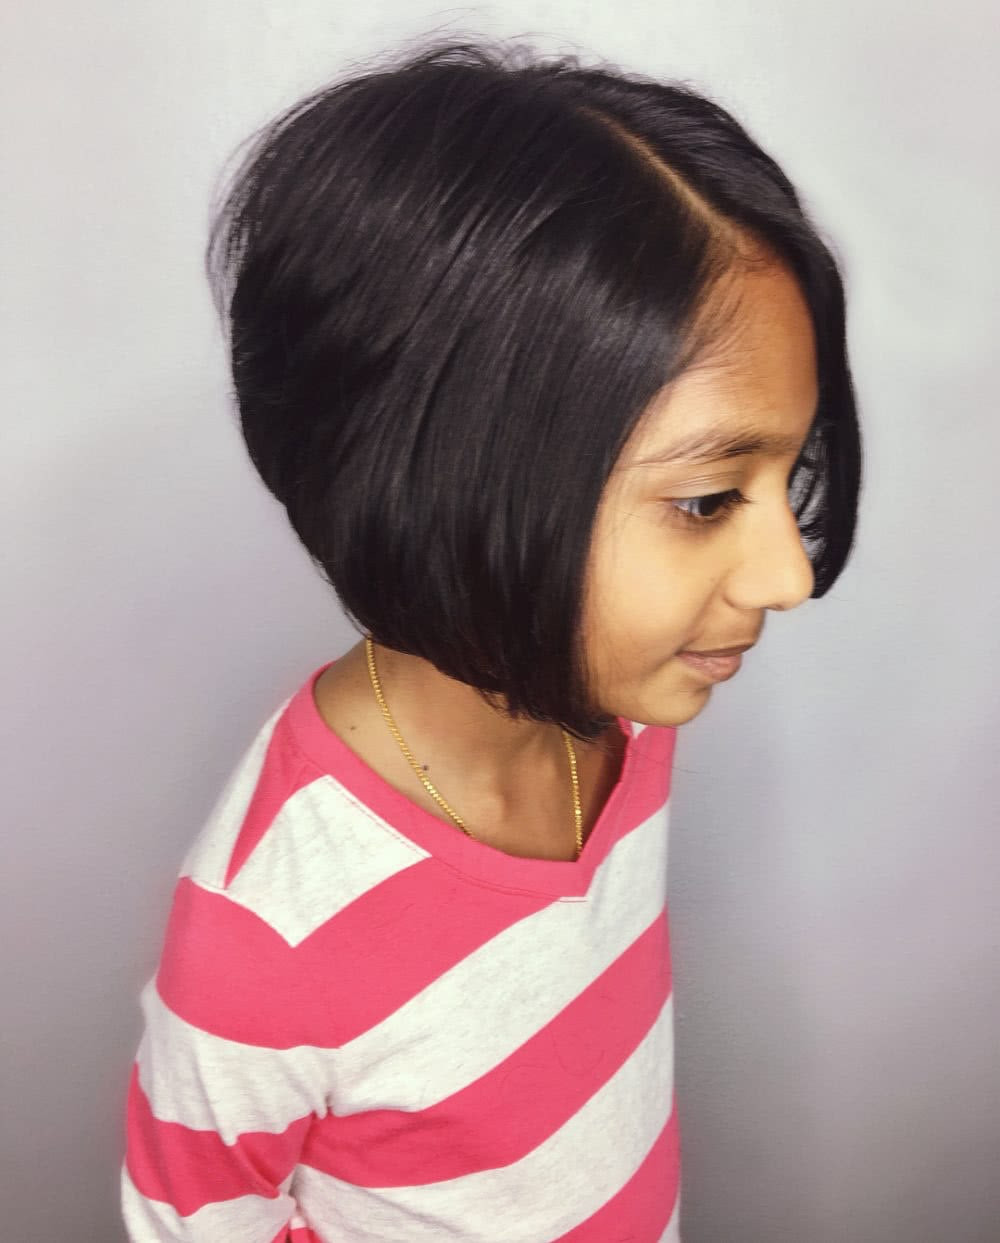 Best ideas about Girls Hair Cut . Save or Pin 29 Cutest Little Girl Hairstyles for 2019 Now.